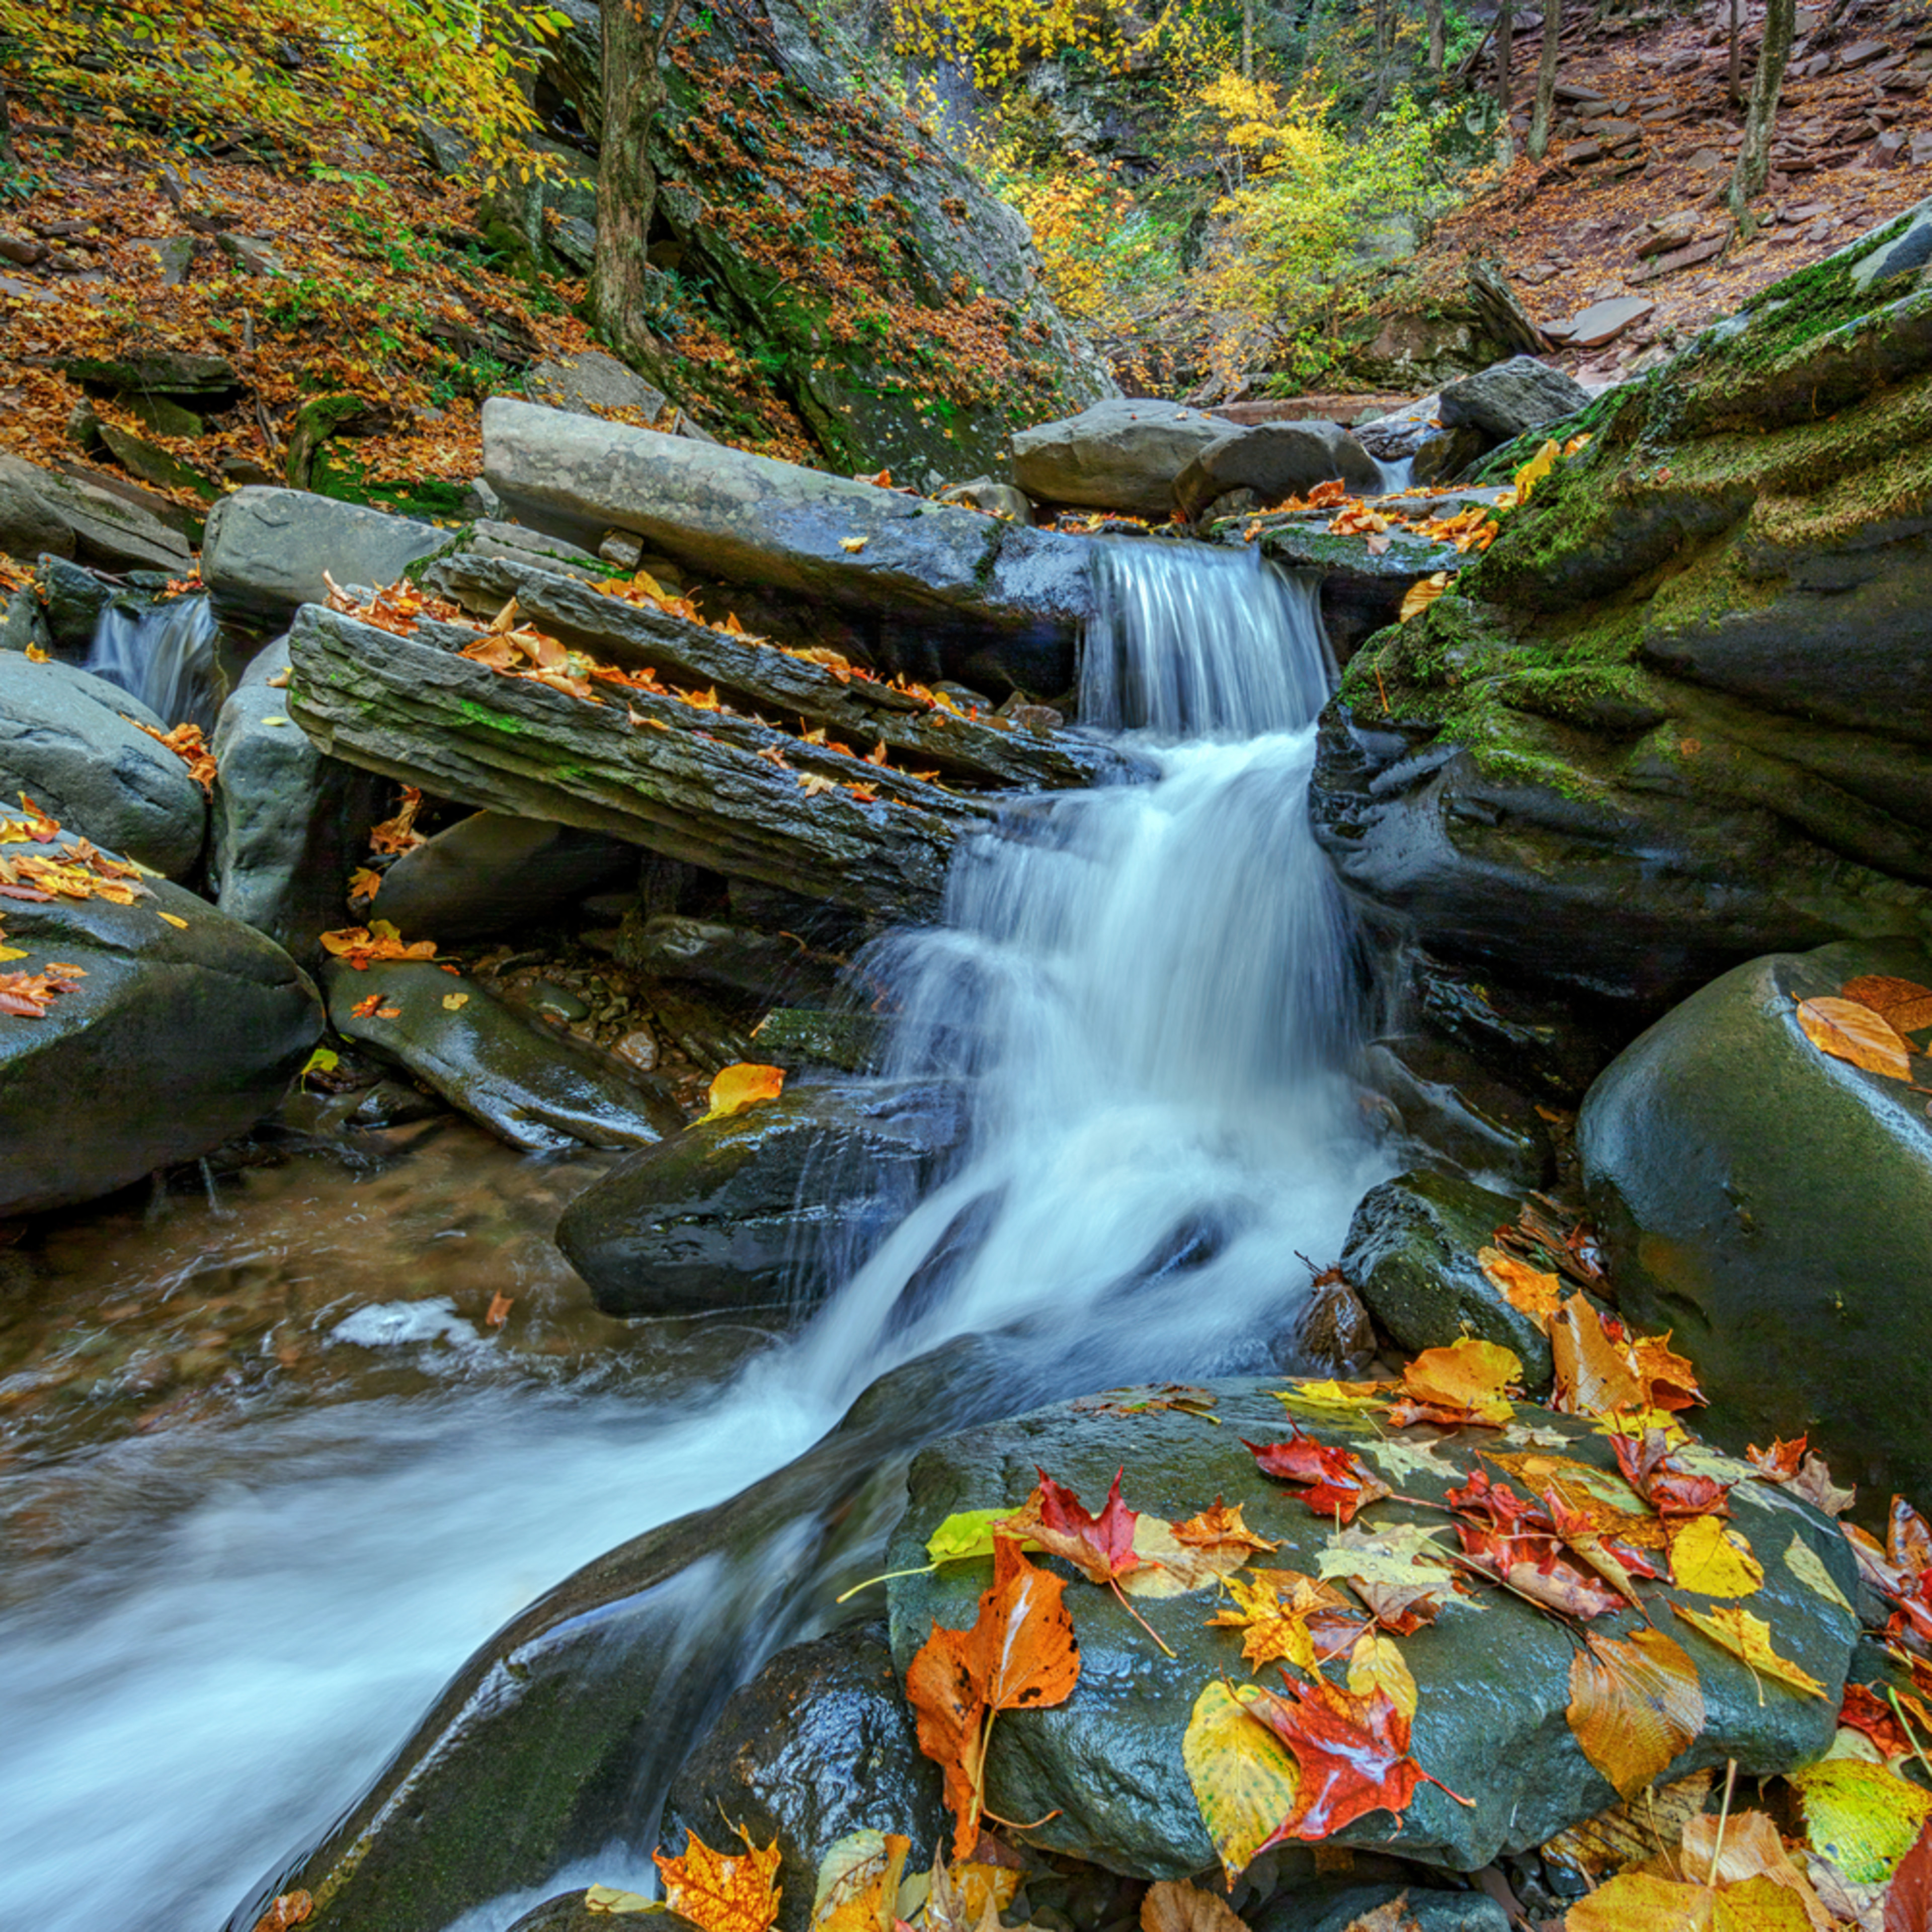 20131015 kaaterskill 0087a uinfwc